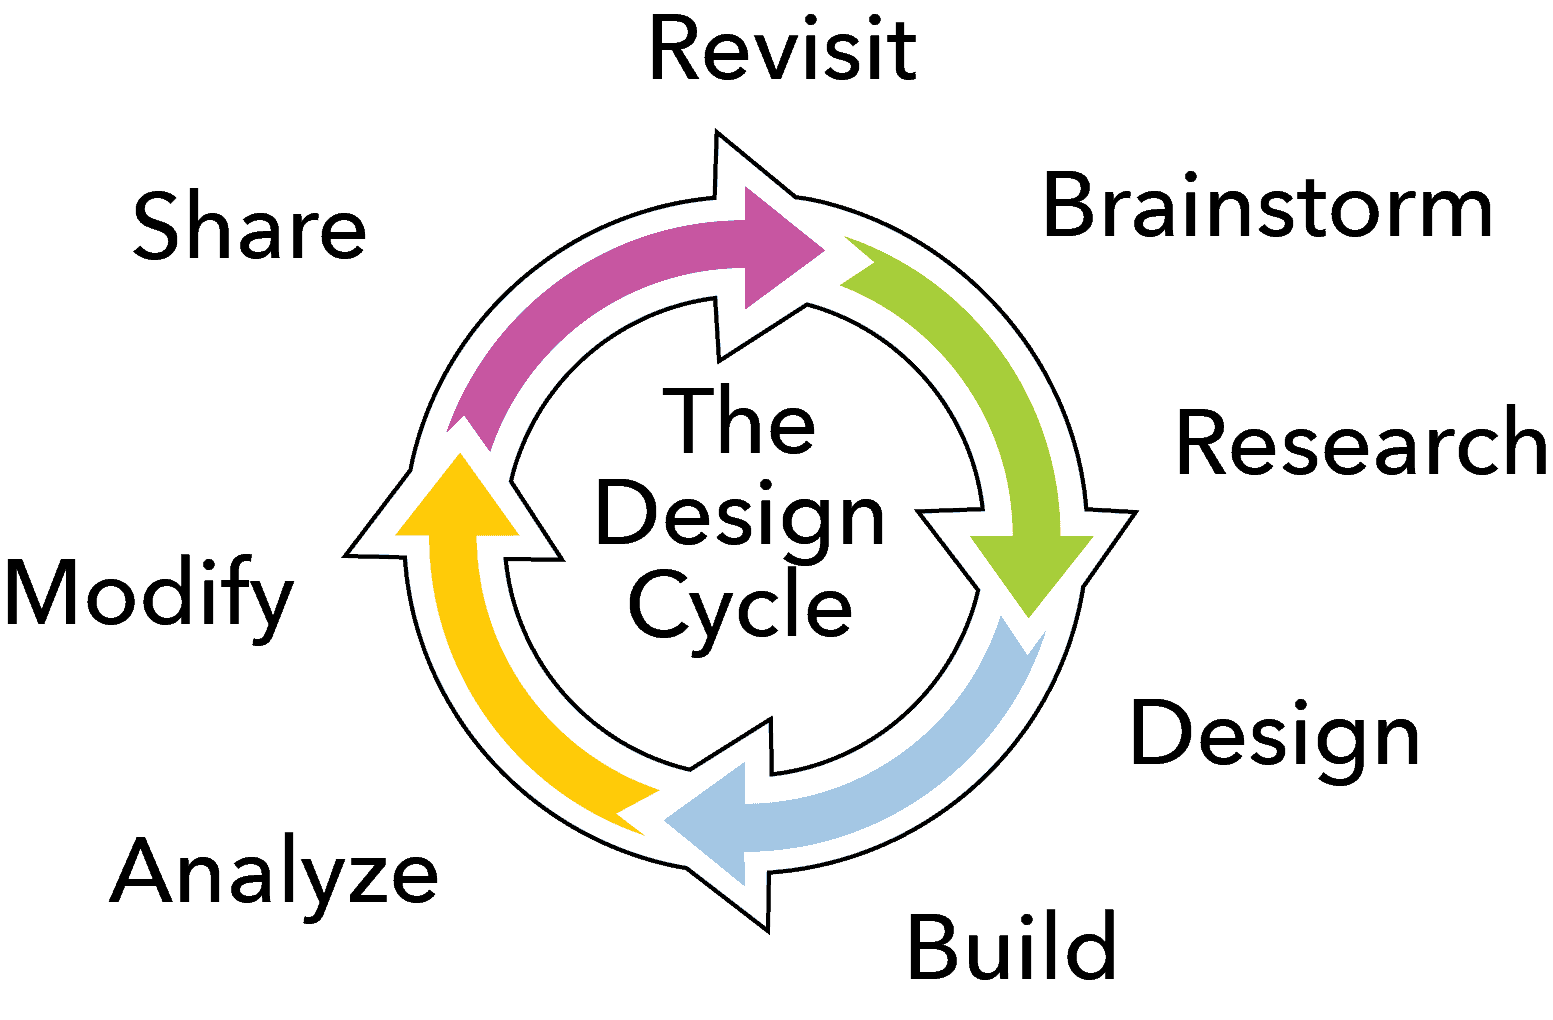 The Design Cycle